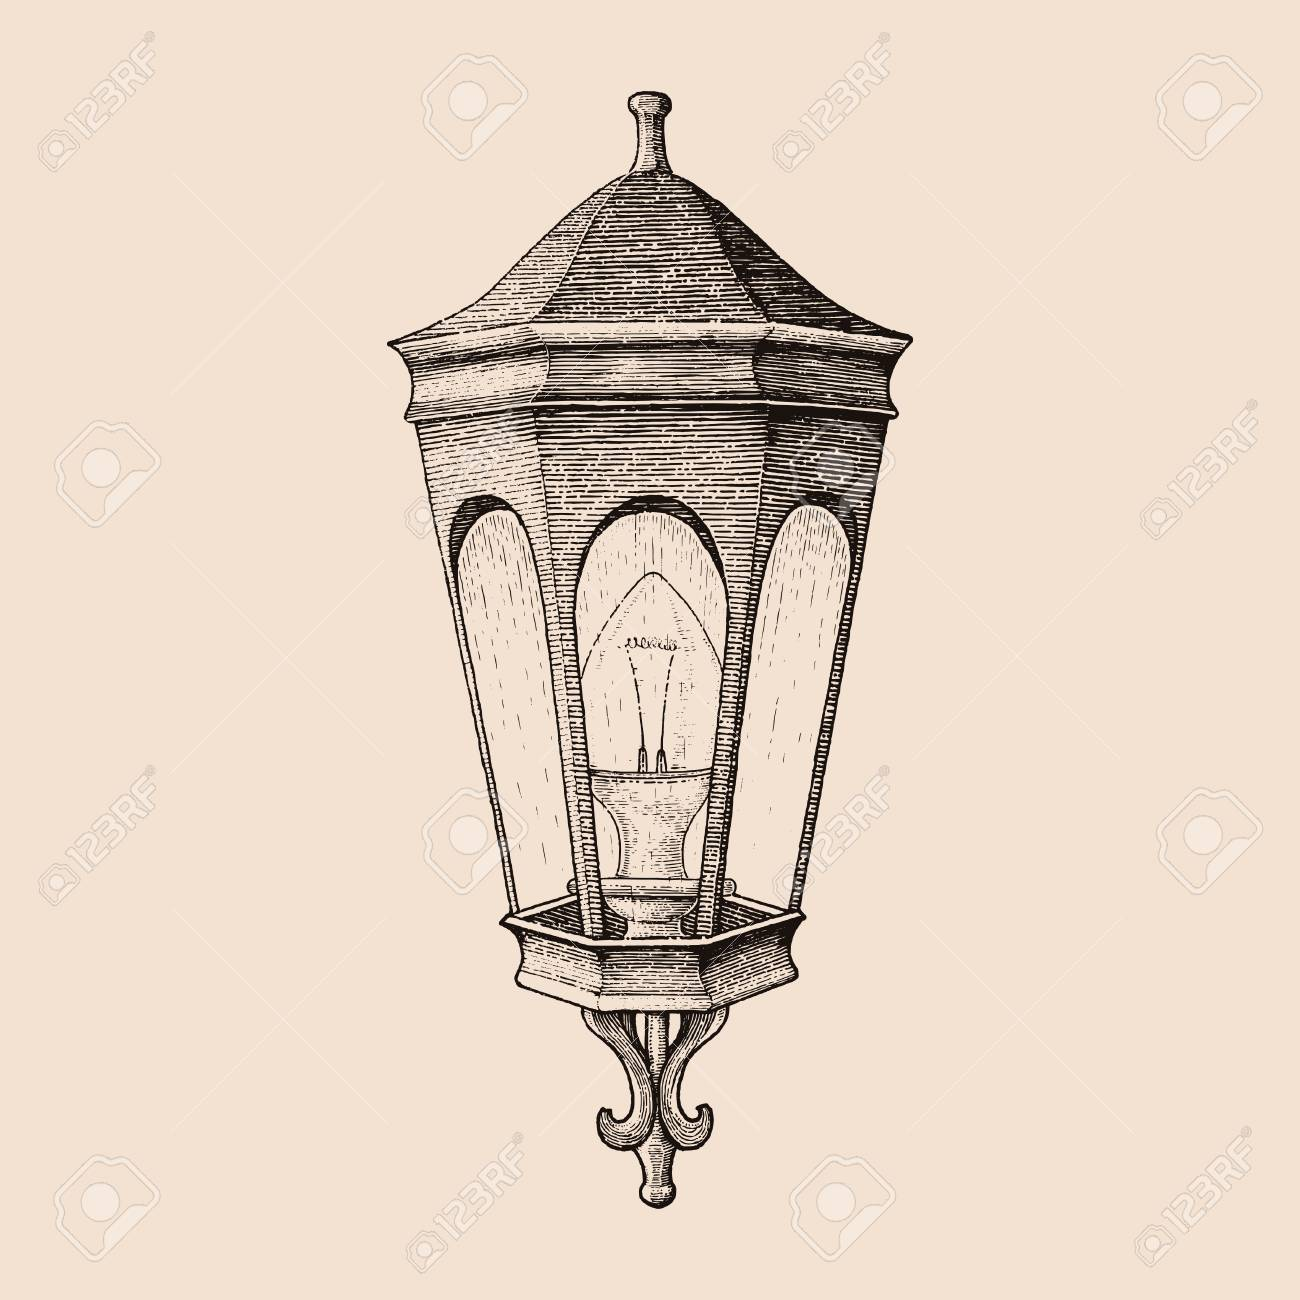 Vintage Road Lamp Hand Drawing Engraving Style Royalty Free Cliparts